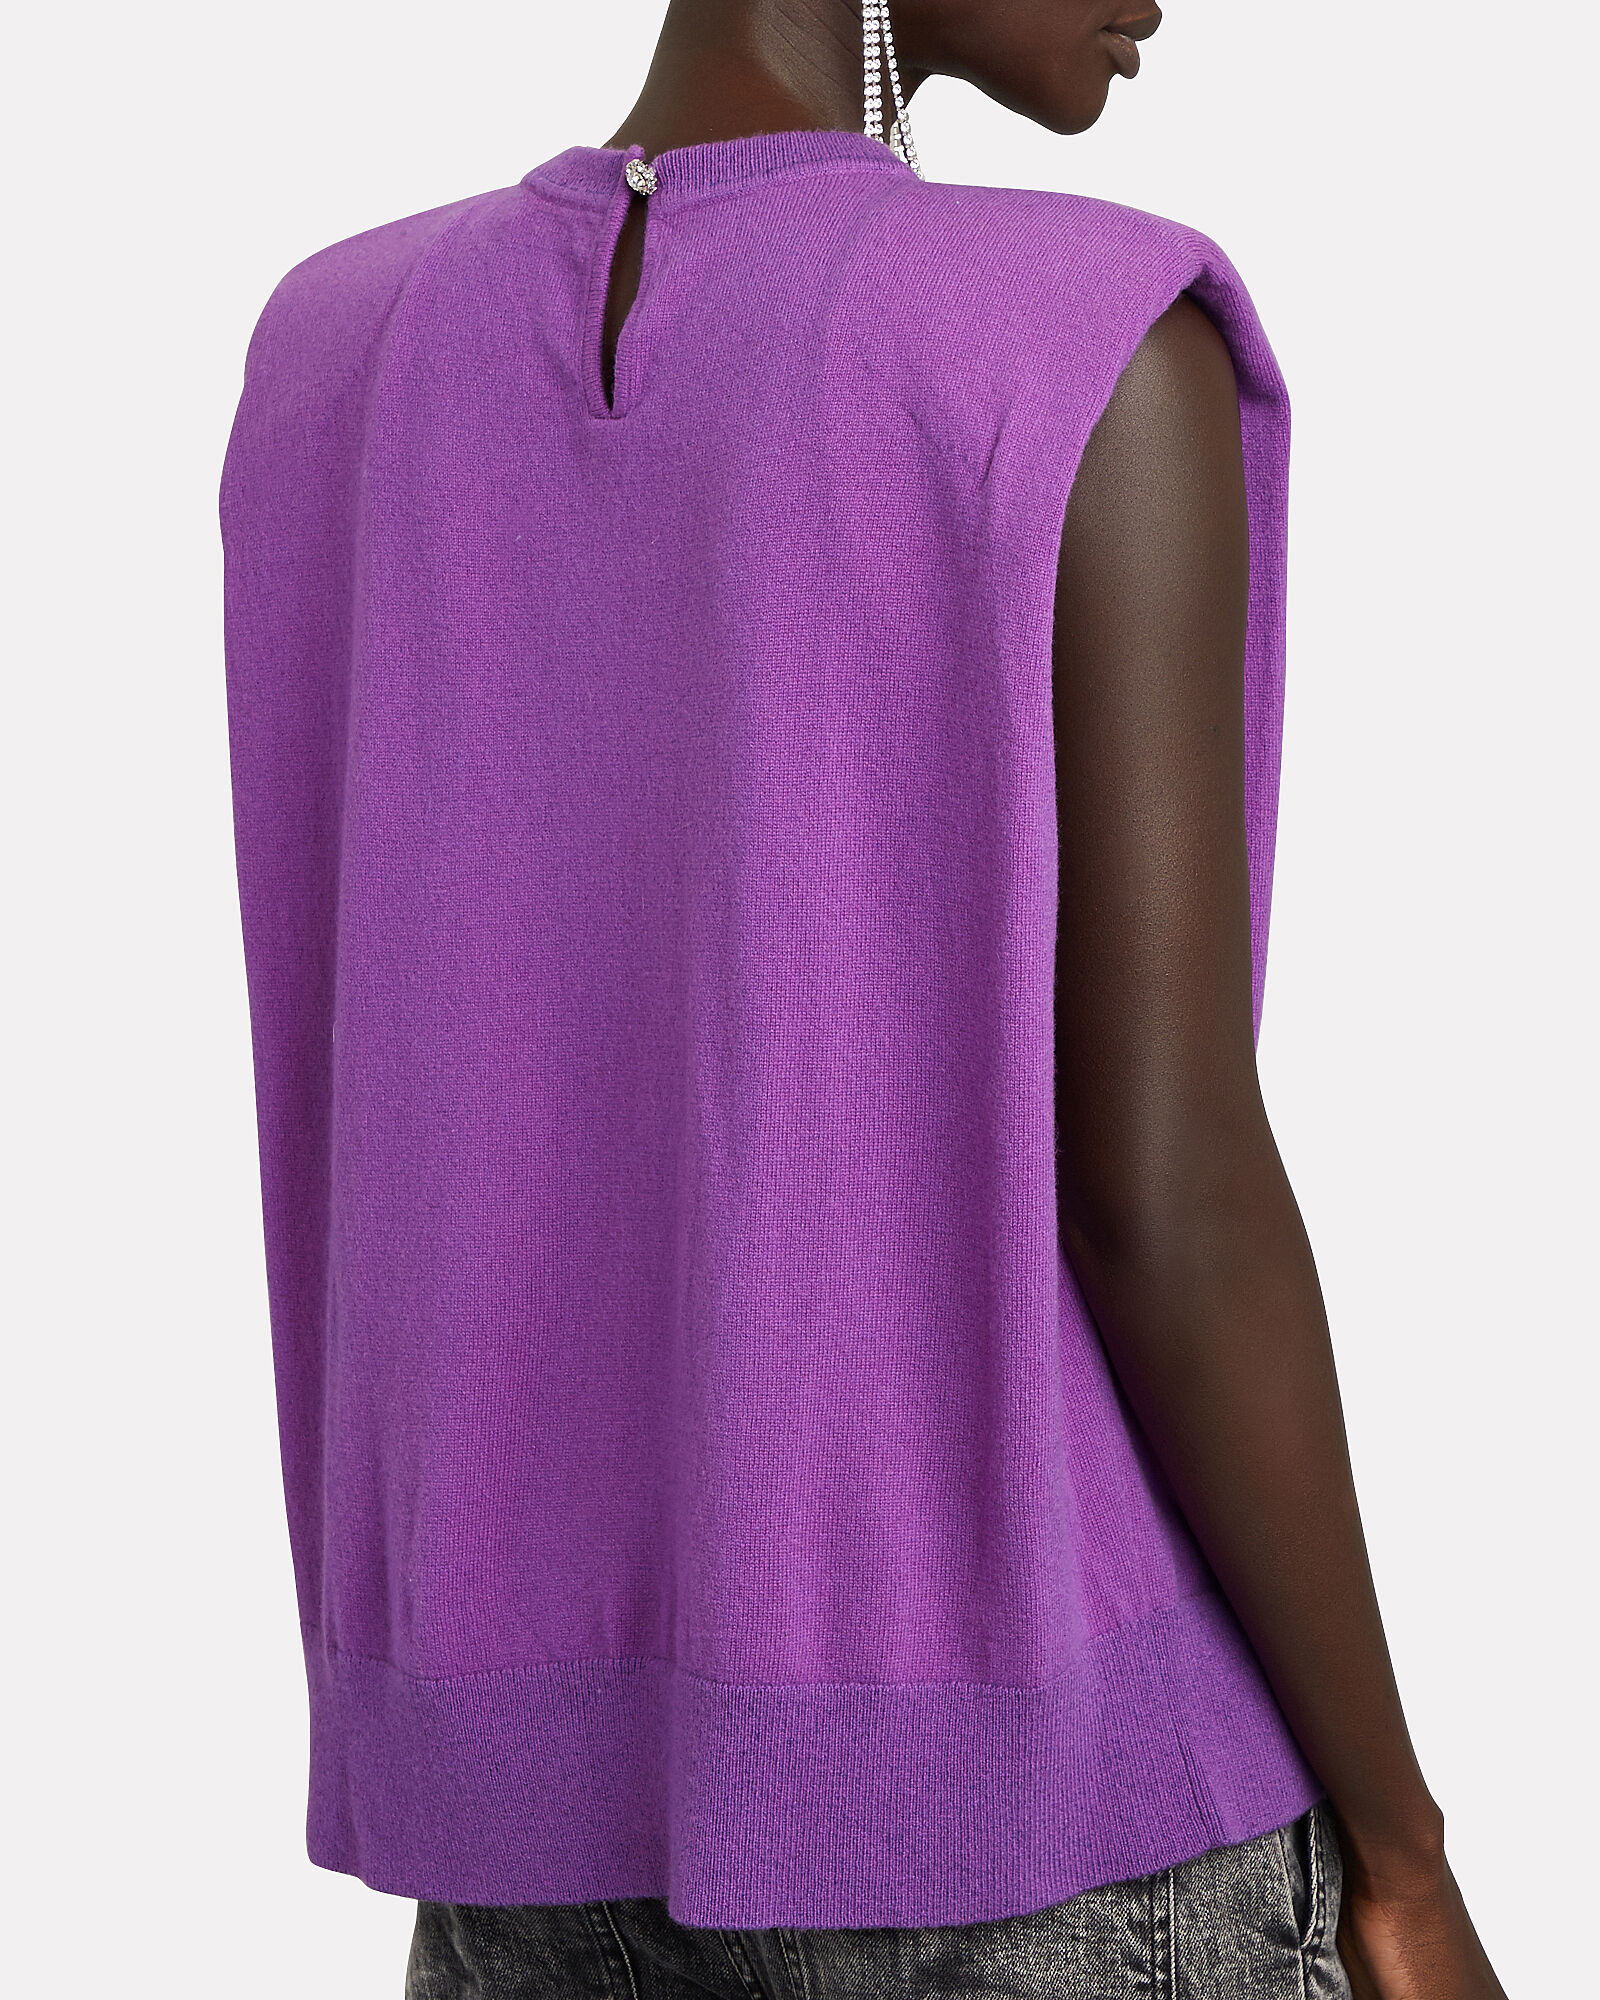 Jaitlin Padded Shoulder Sweater, PURPLE, hi-res